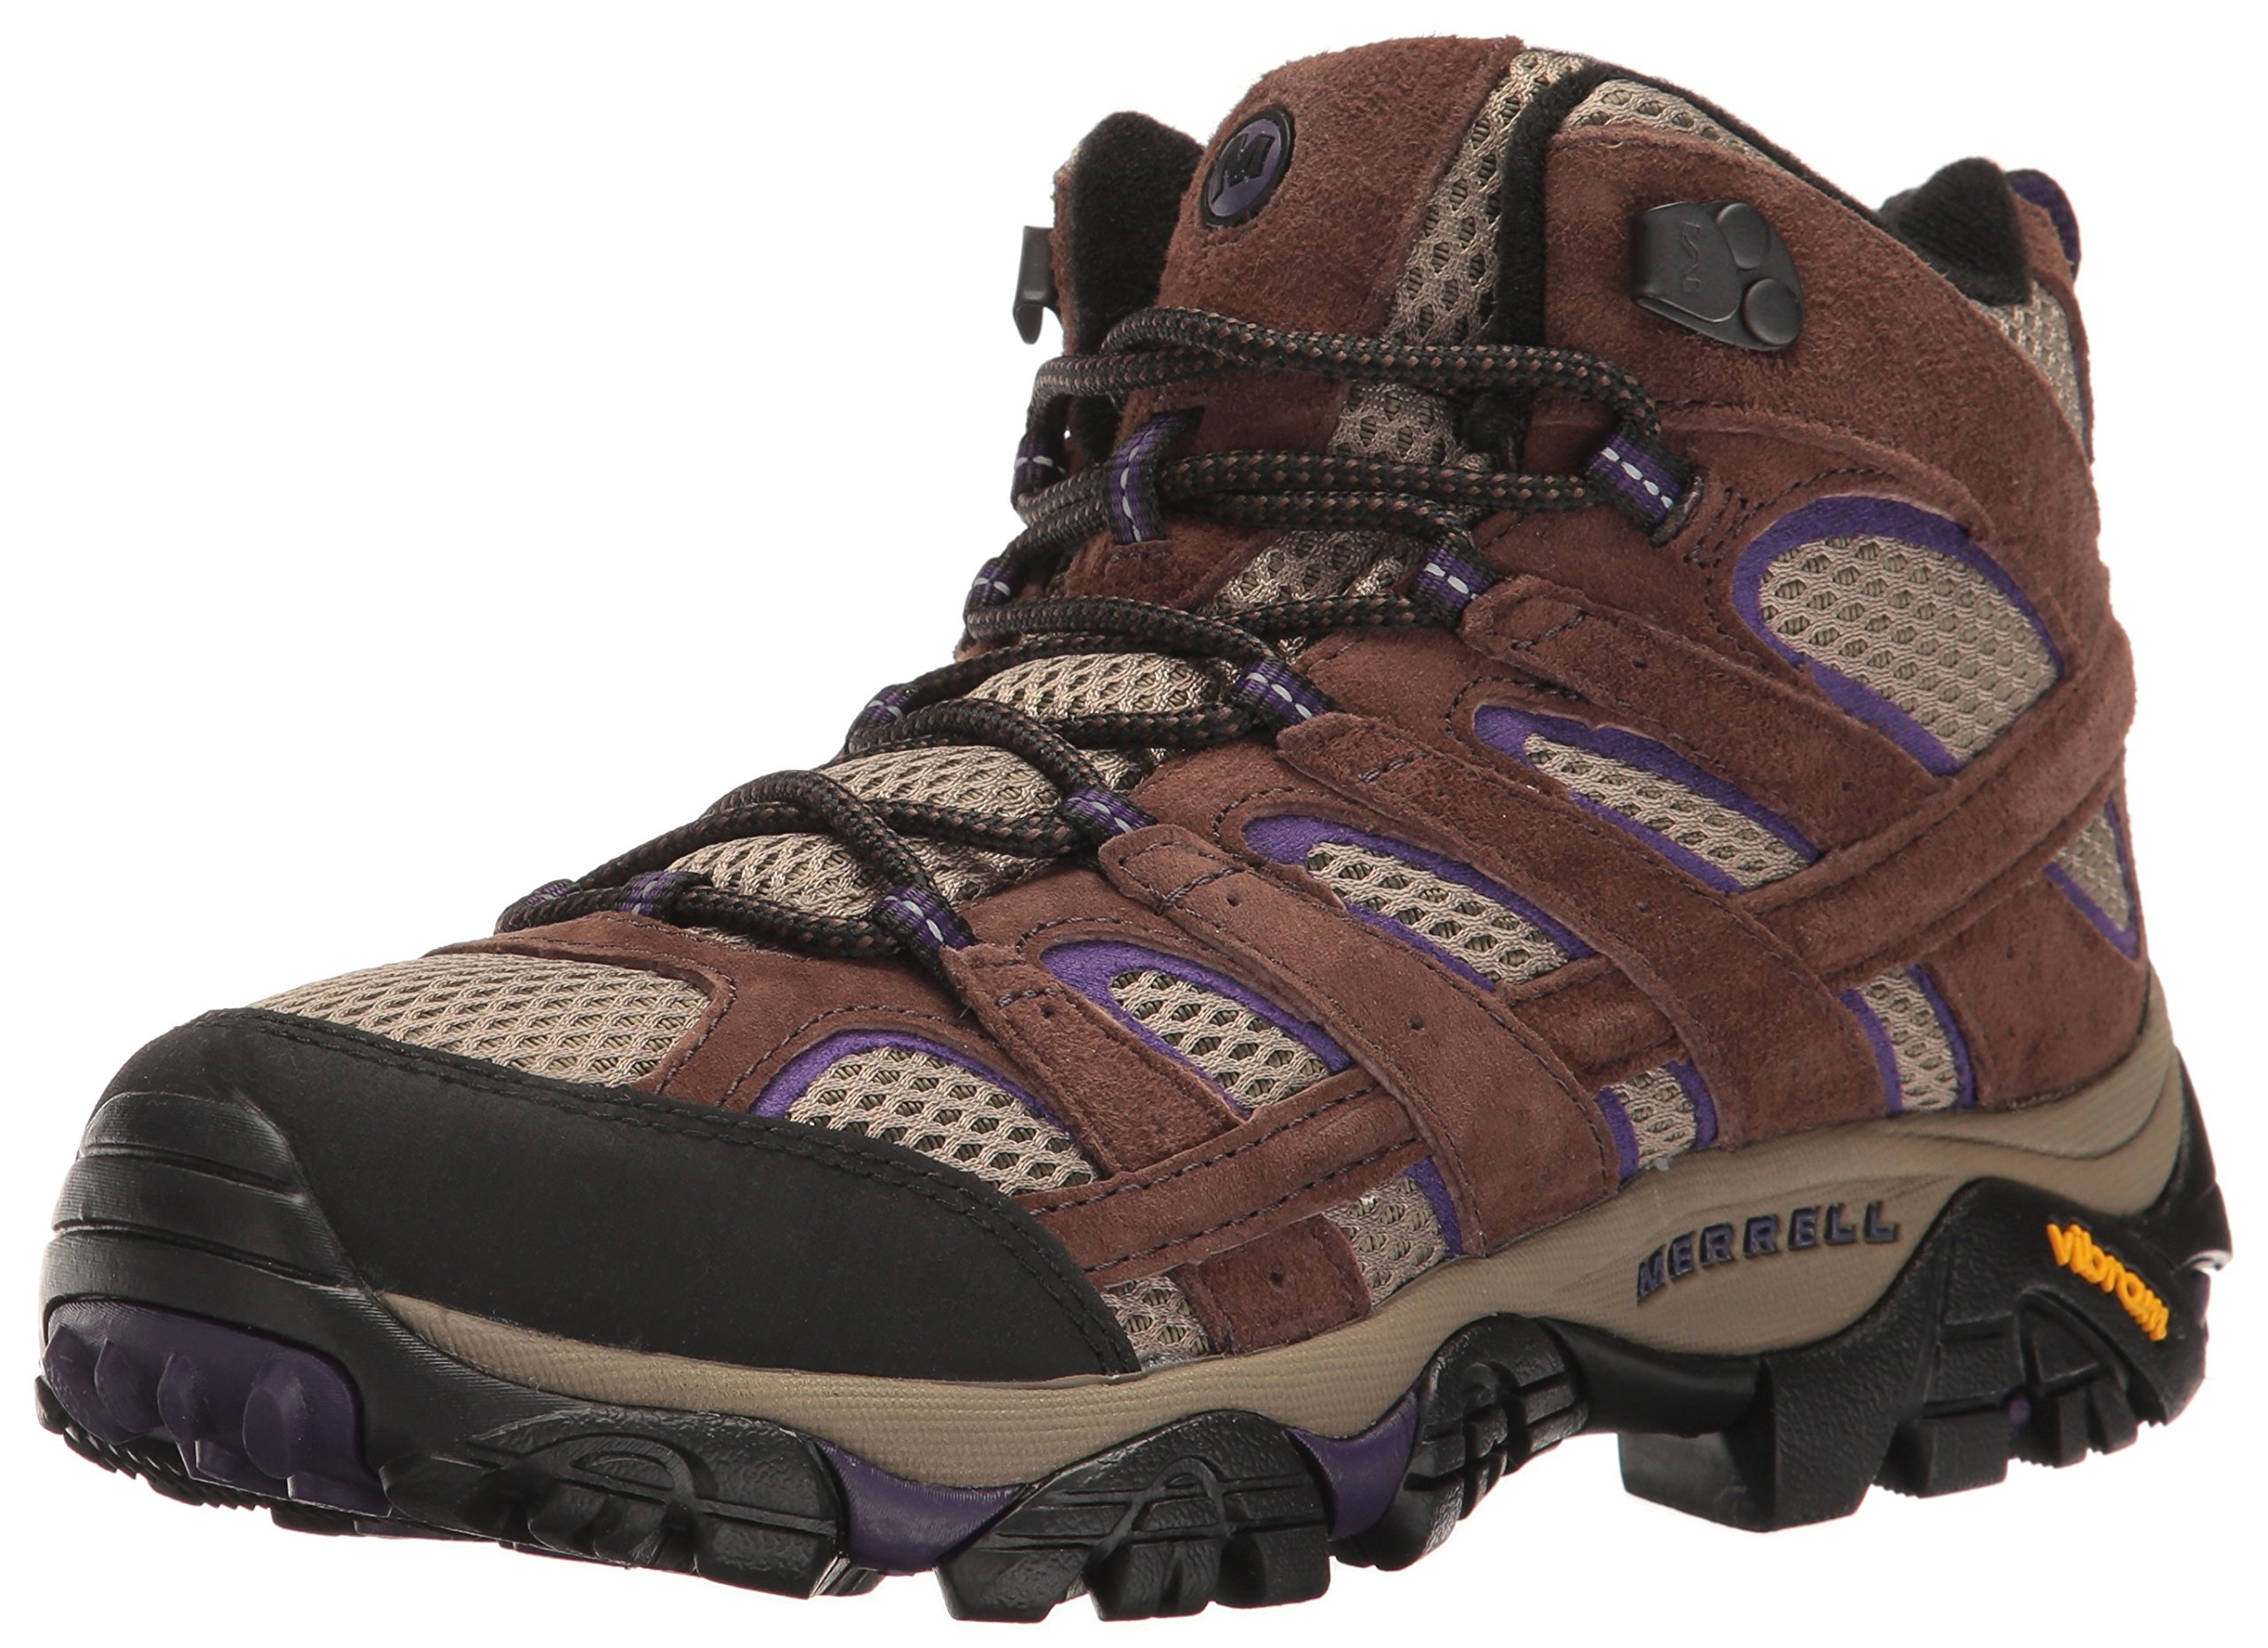 Merrell Women's Moab 2 Vent Mid Hiking Boot, Bracken/Purple, 9 M US